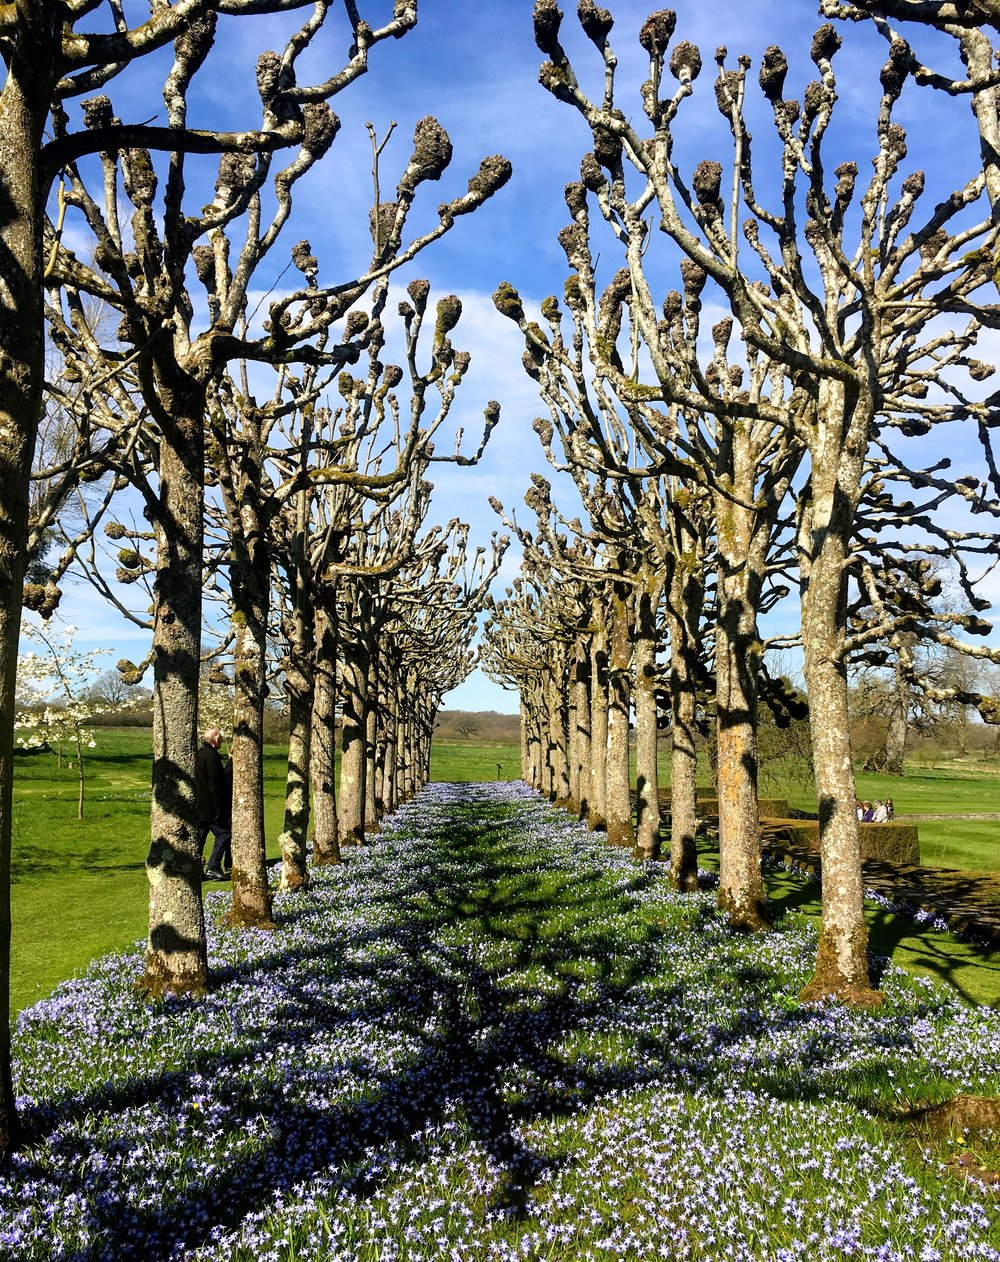 Lime trees, bulbs and blue skies - it must be almost Spring